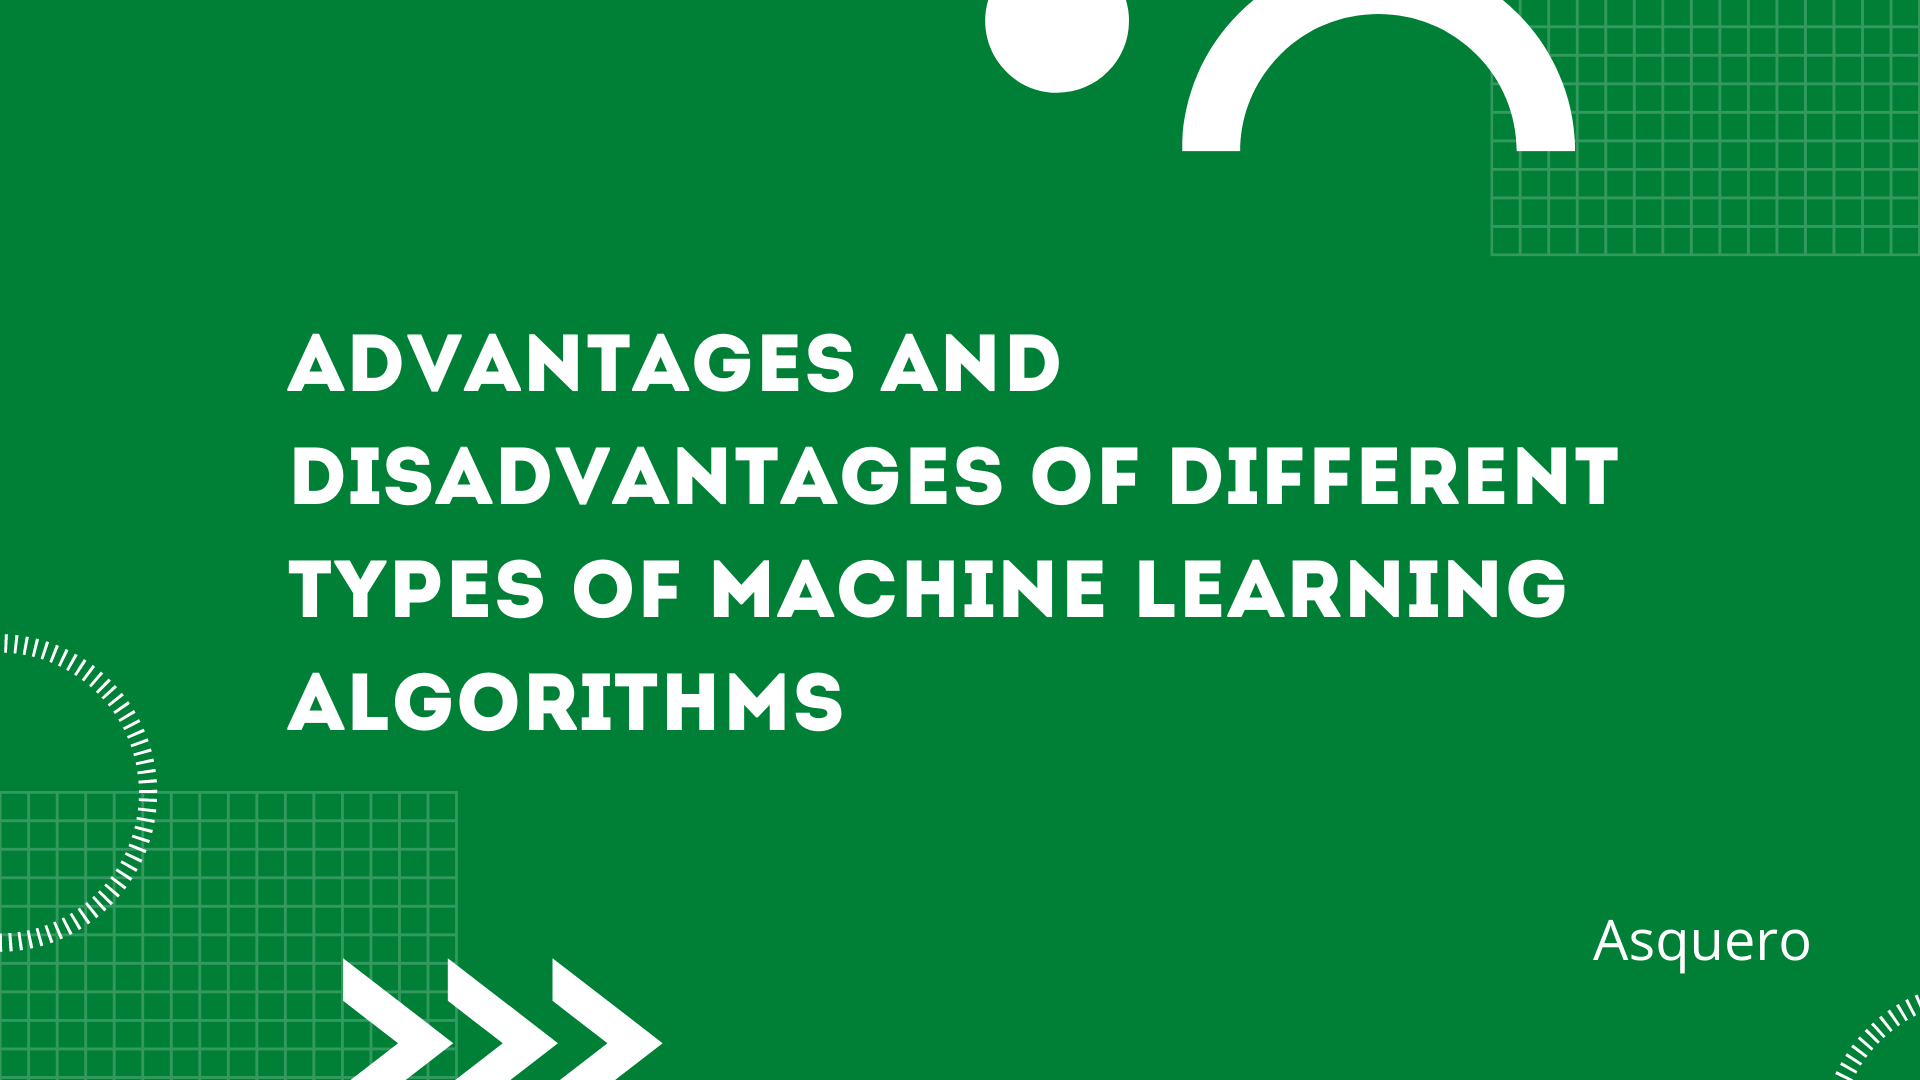 Advantages and Disadvantages of different types of machine learning algorithms